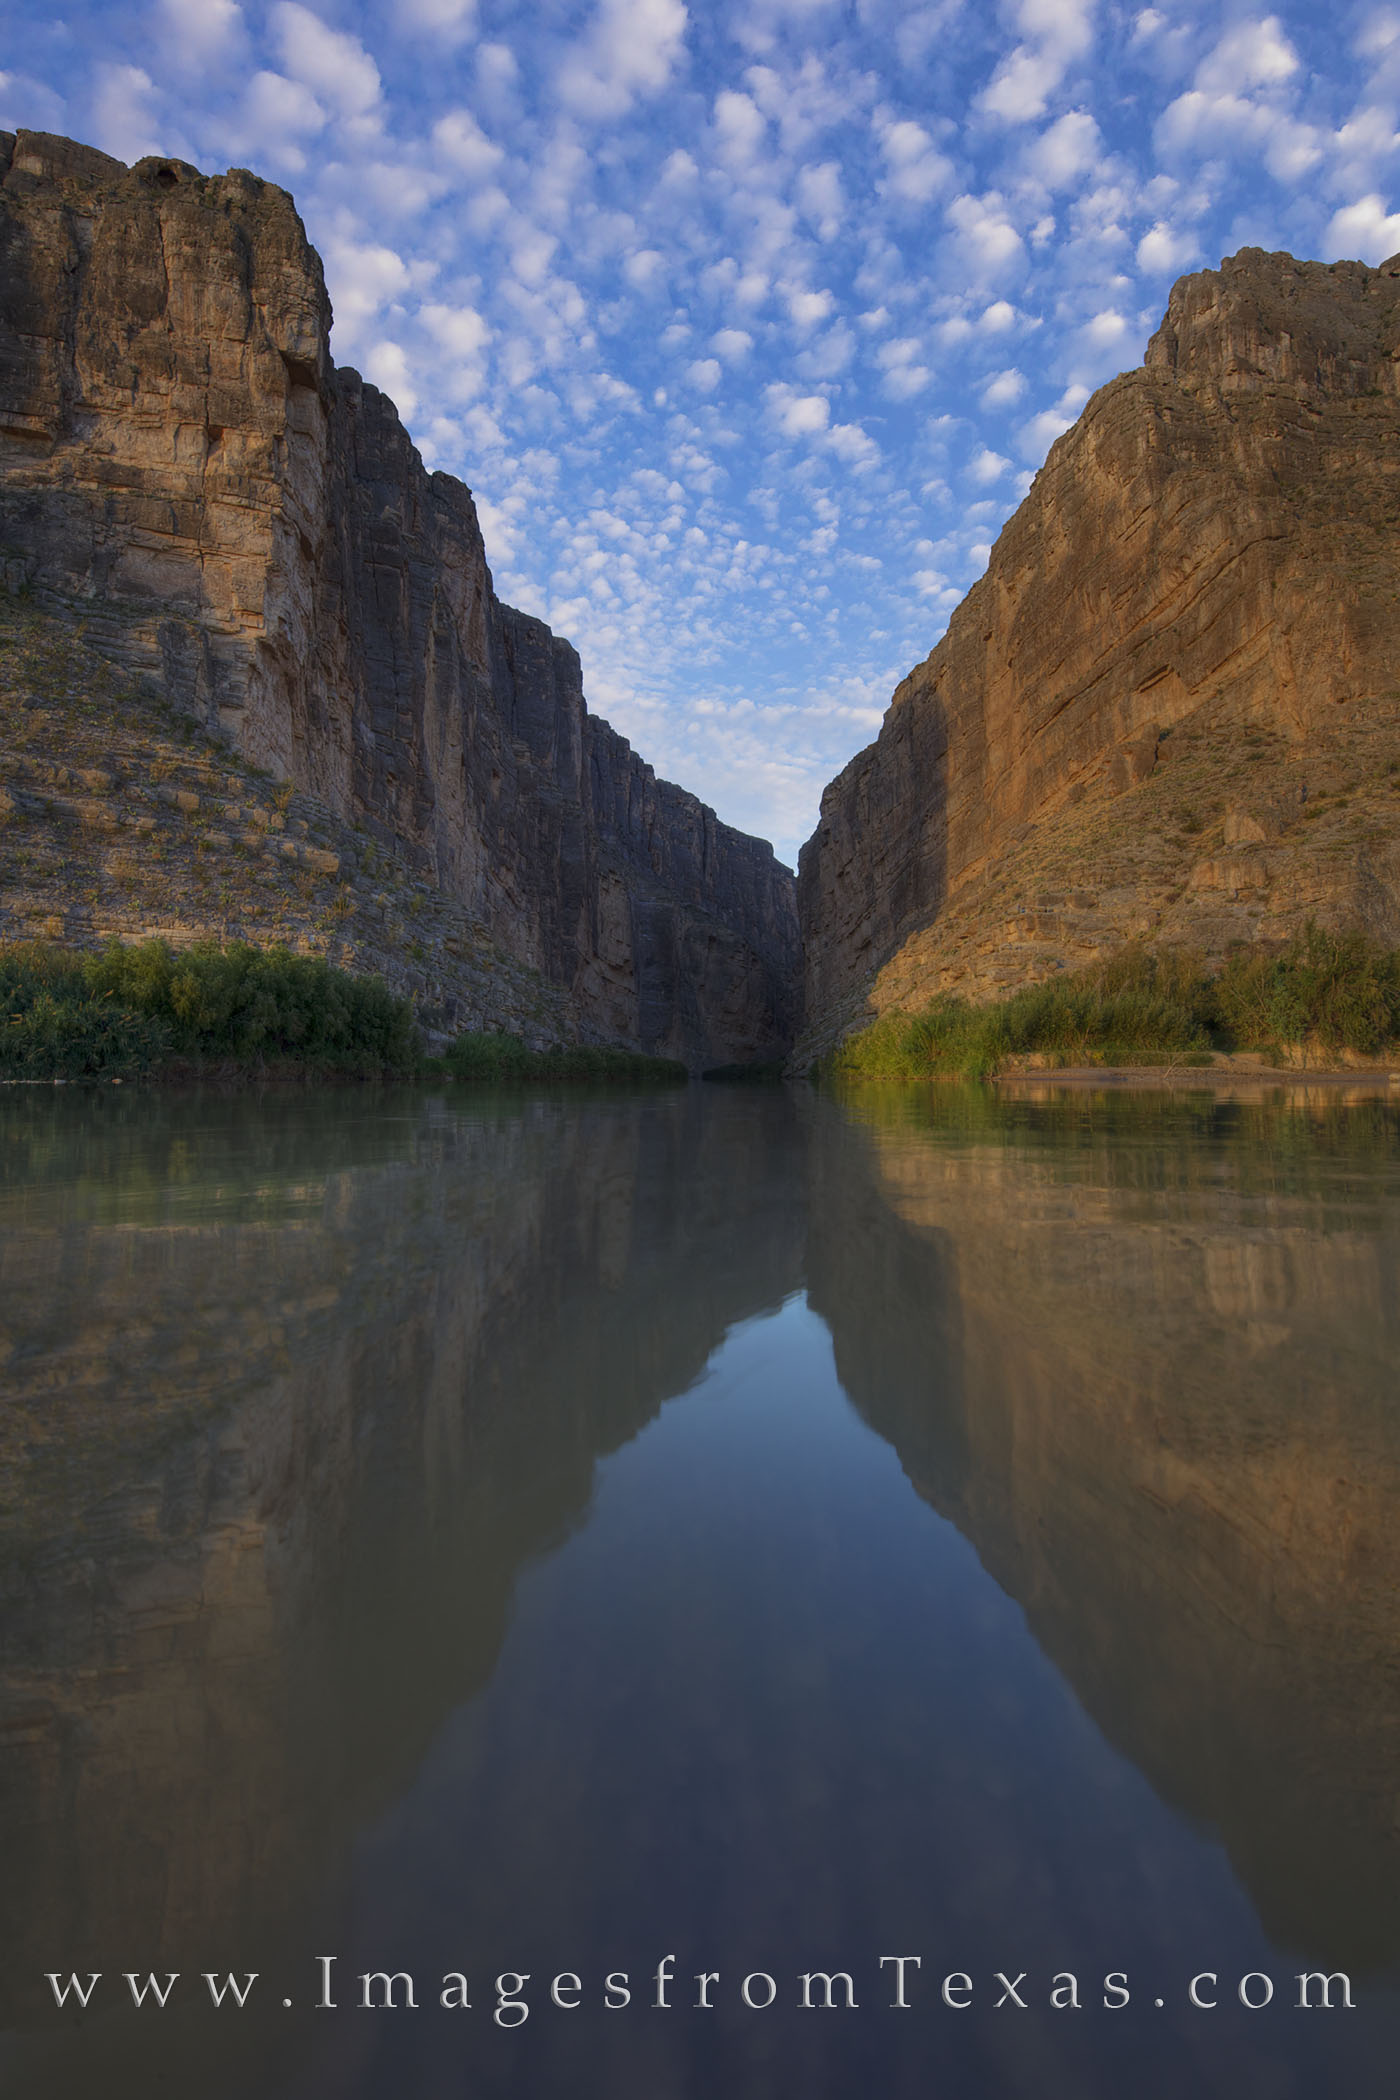 big bend national park, santa elena canyon, big bend images, texas national parks, texas canyons, morning, canyons, sunrise, rio grande, river, texas rivers, texas landscapes, photo